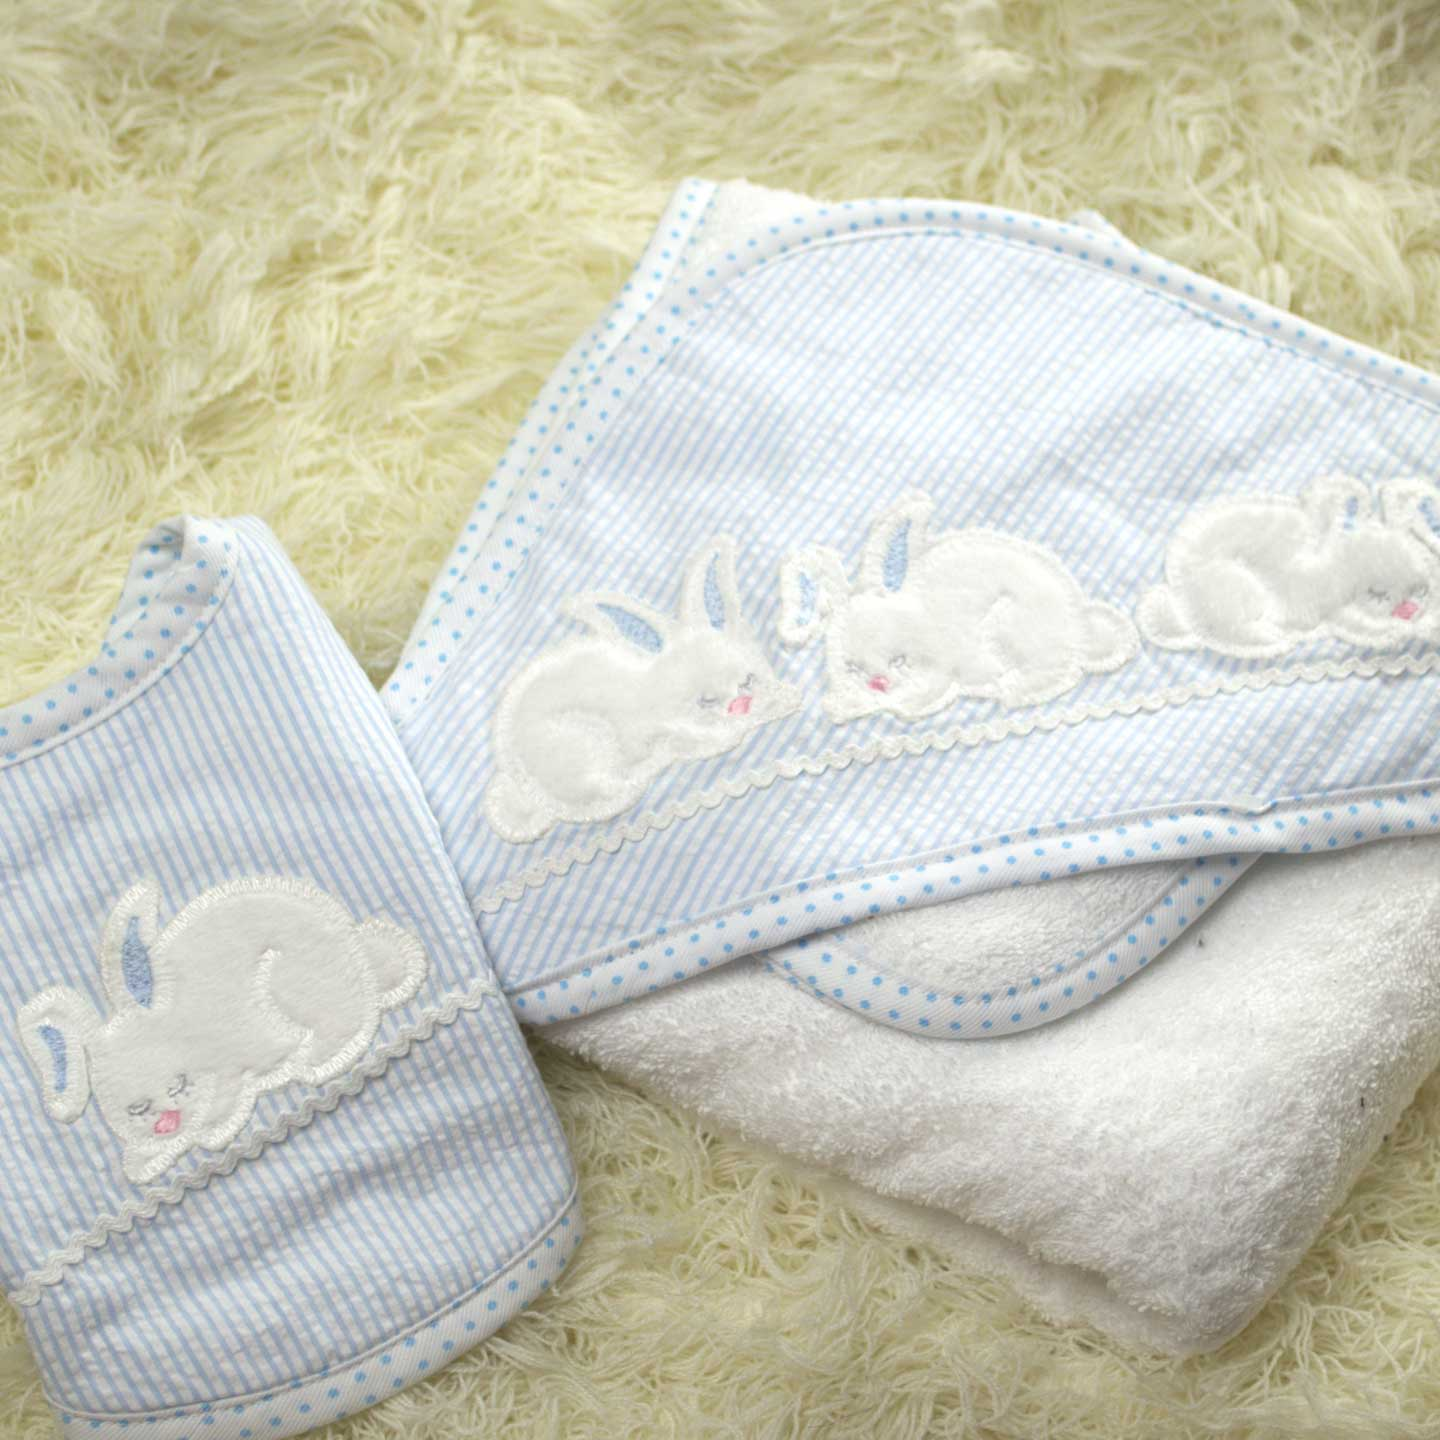 Bunnies Hooded Towel, Washcloth & Bib Set